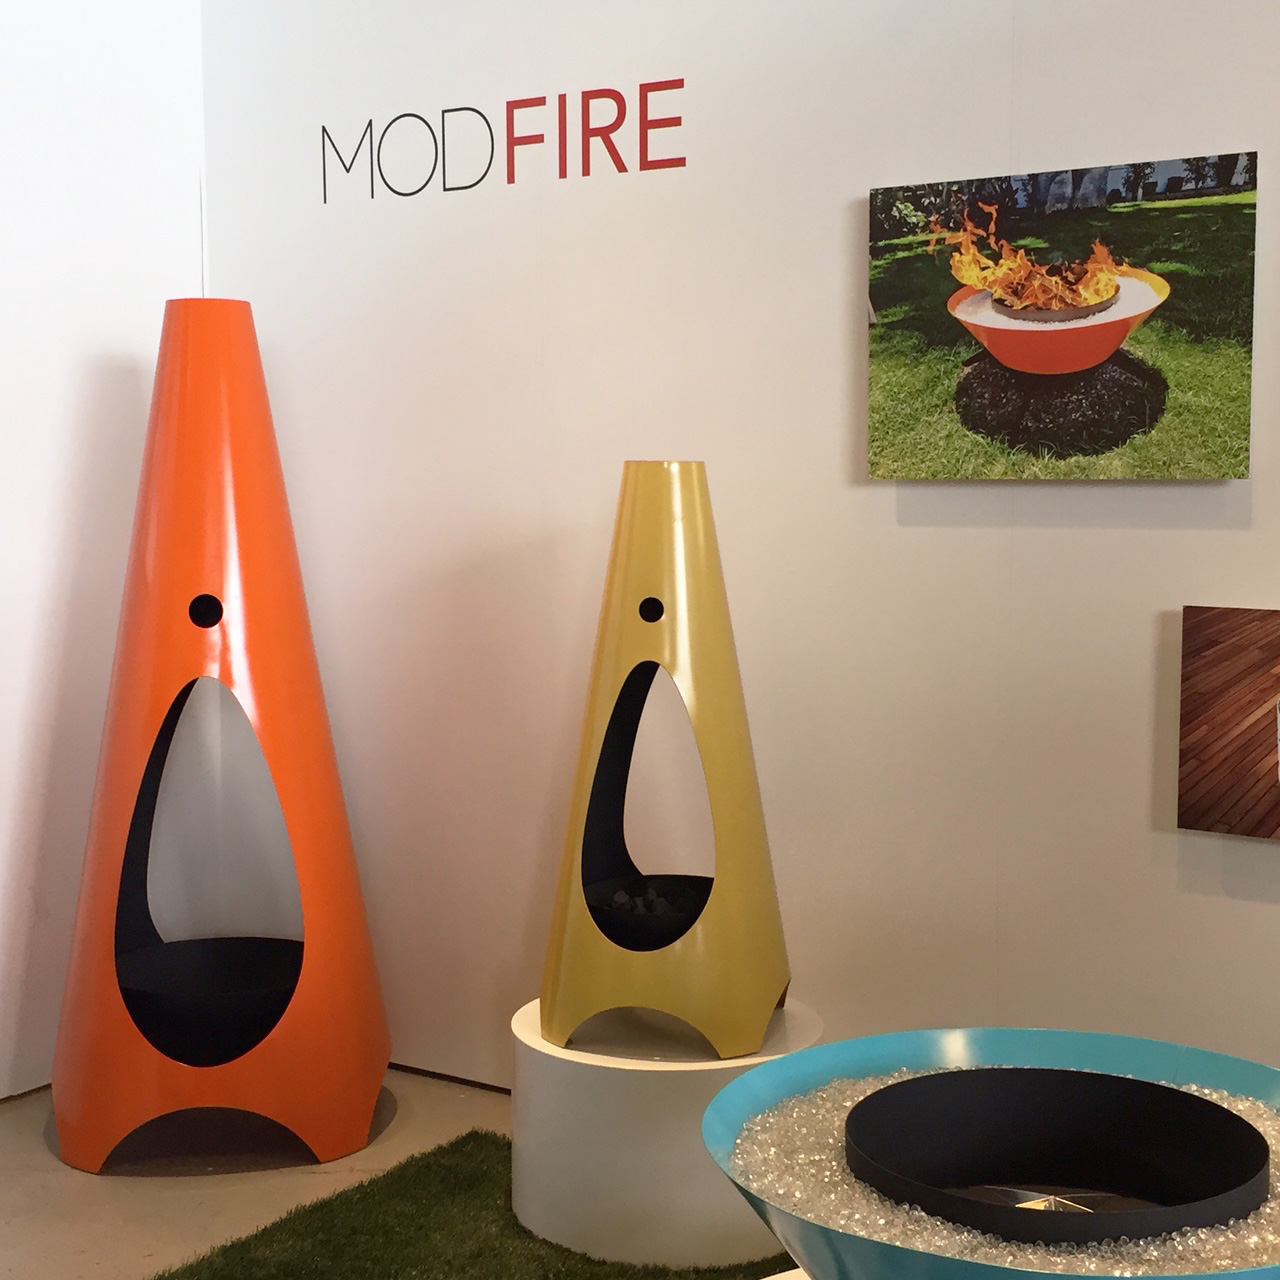 Modfire at WestEdge 2015